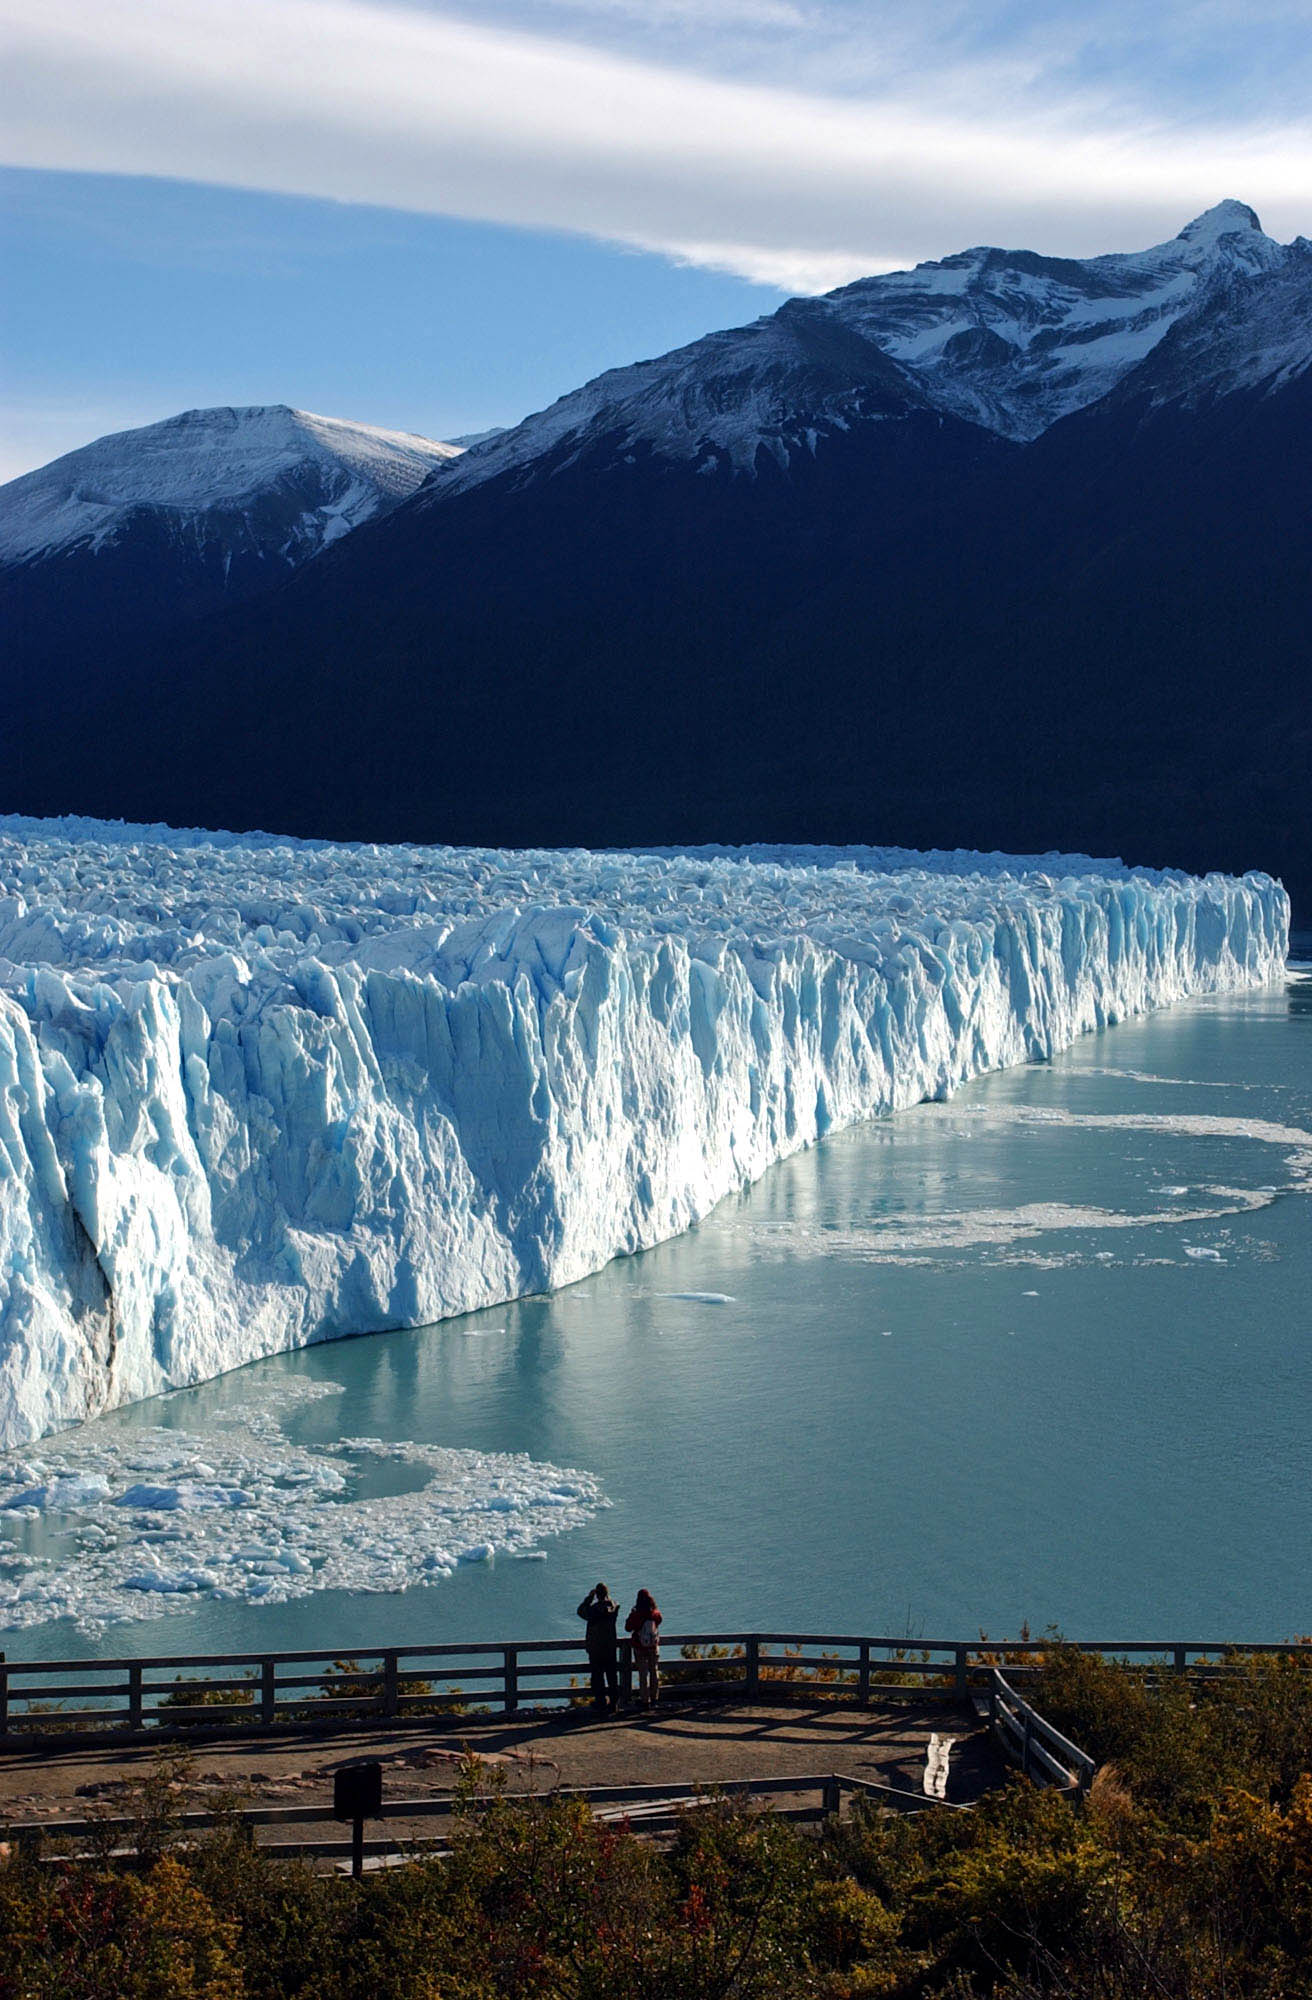 Space in Images - 2004 - 03 - Los Glaciares National Park ...